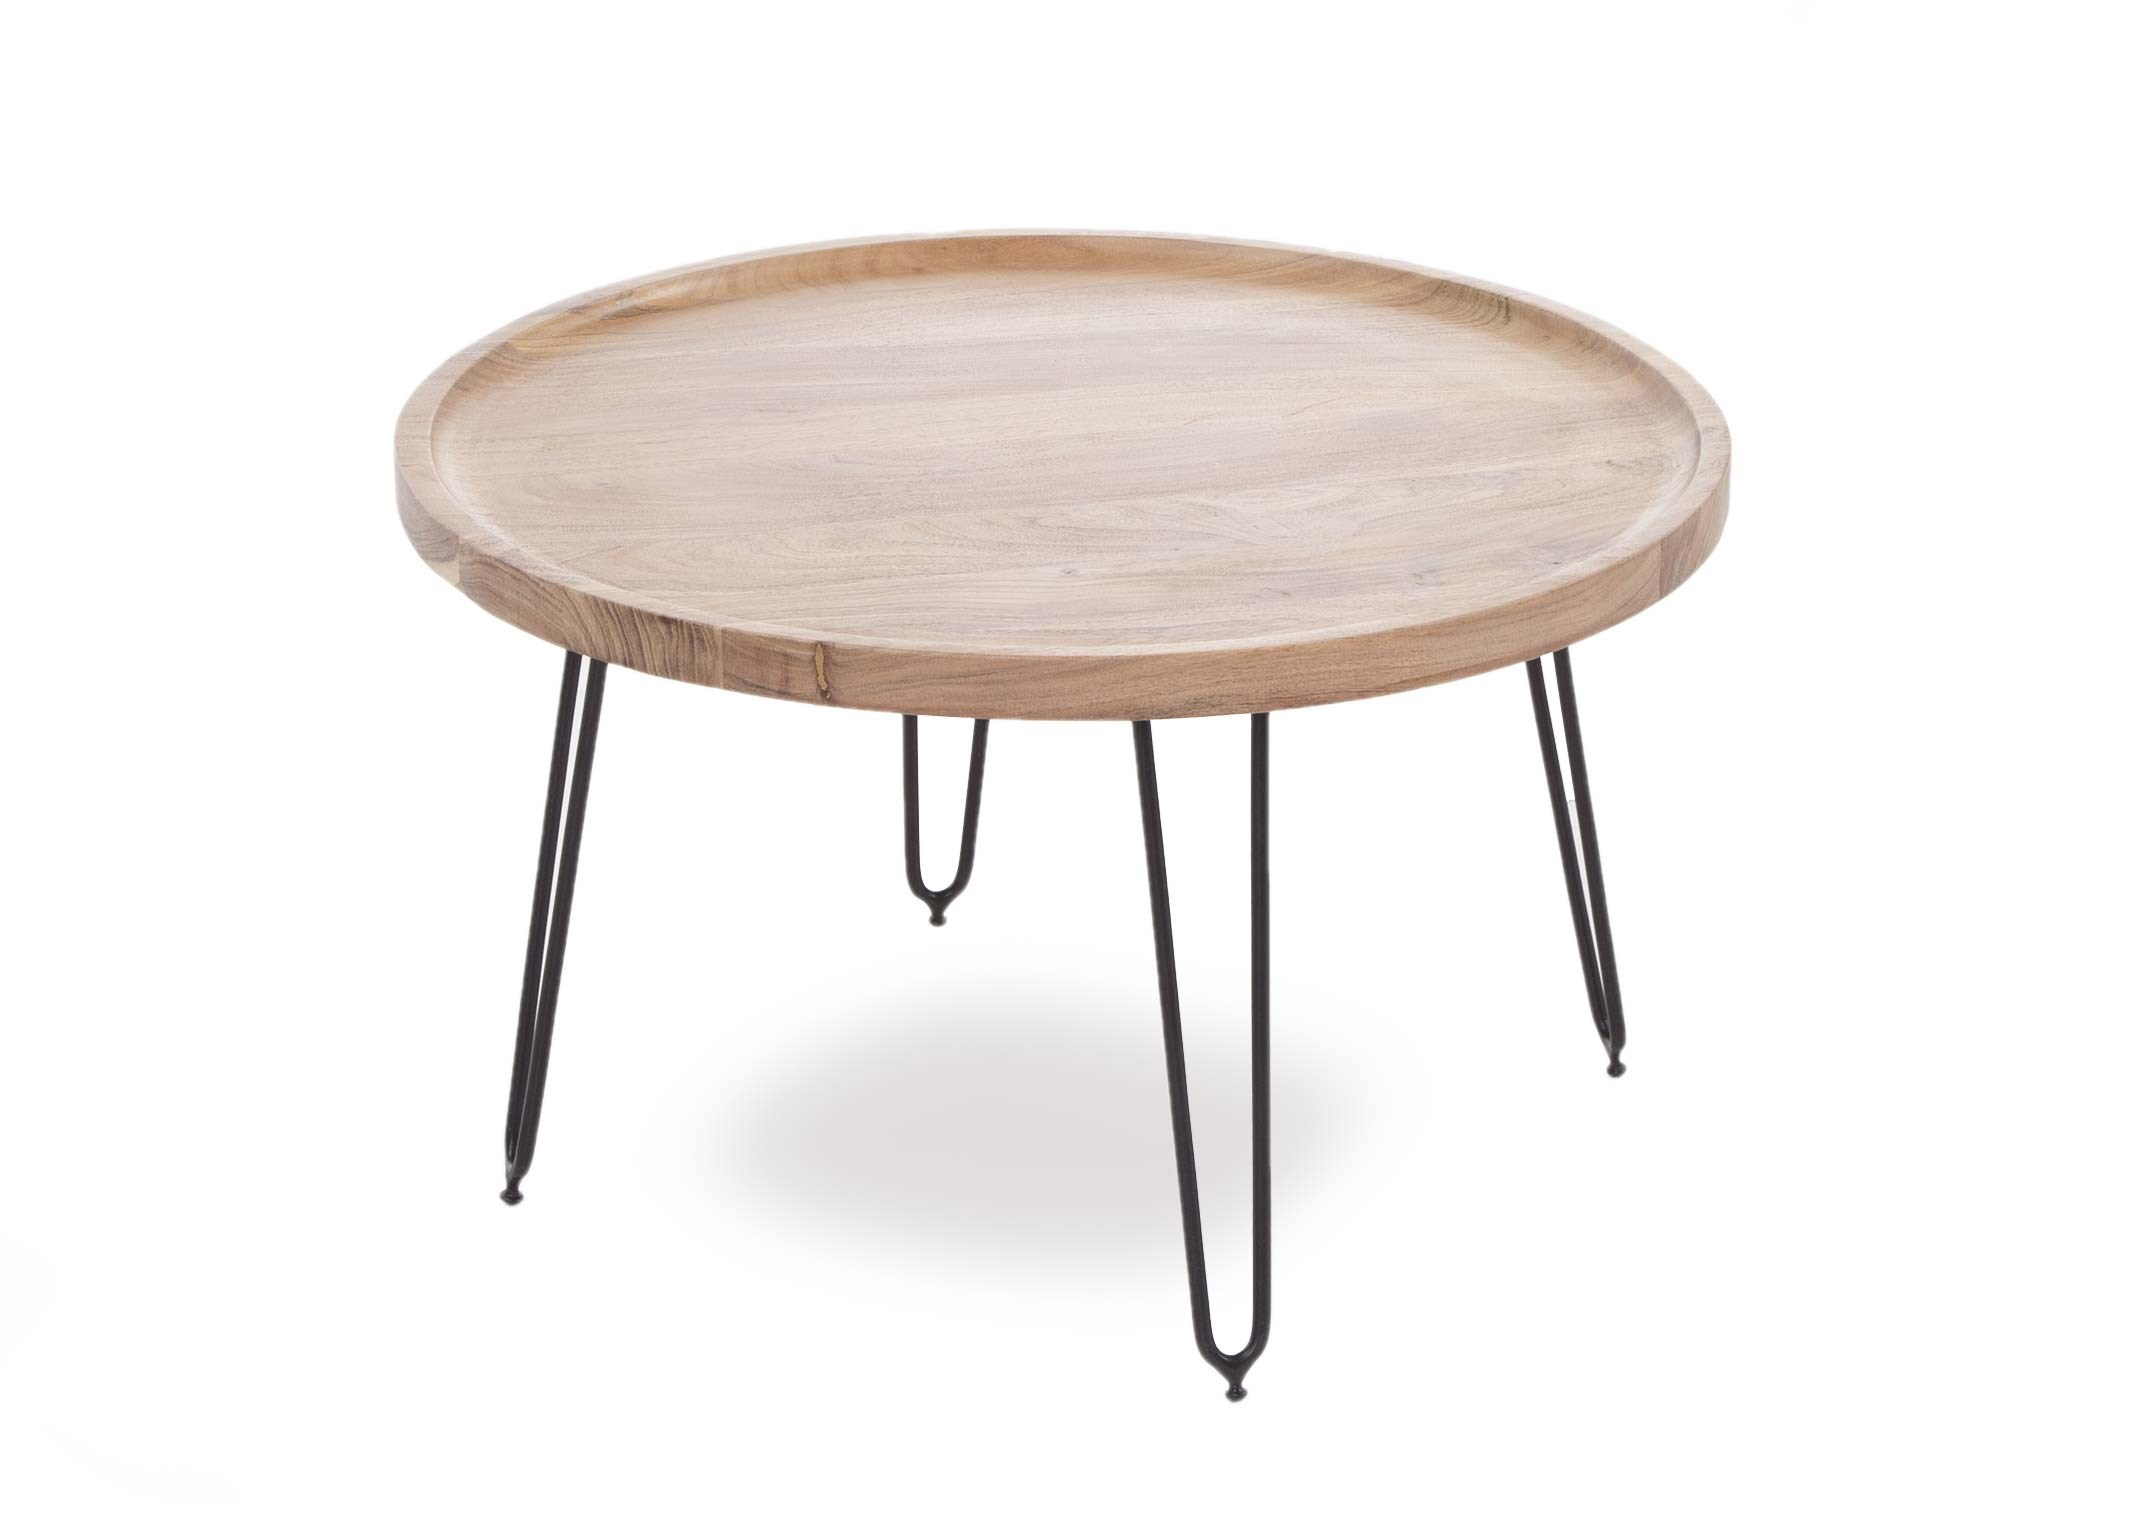 Large Round Coffee Table With Black Metal Legs Crete Ez Living Furniture